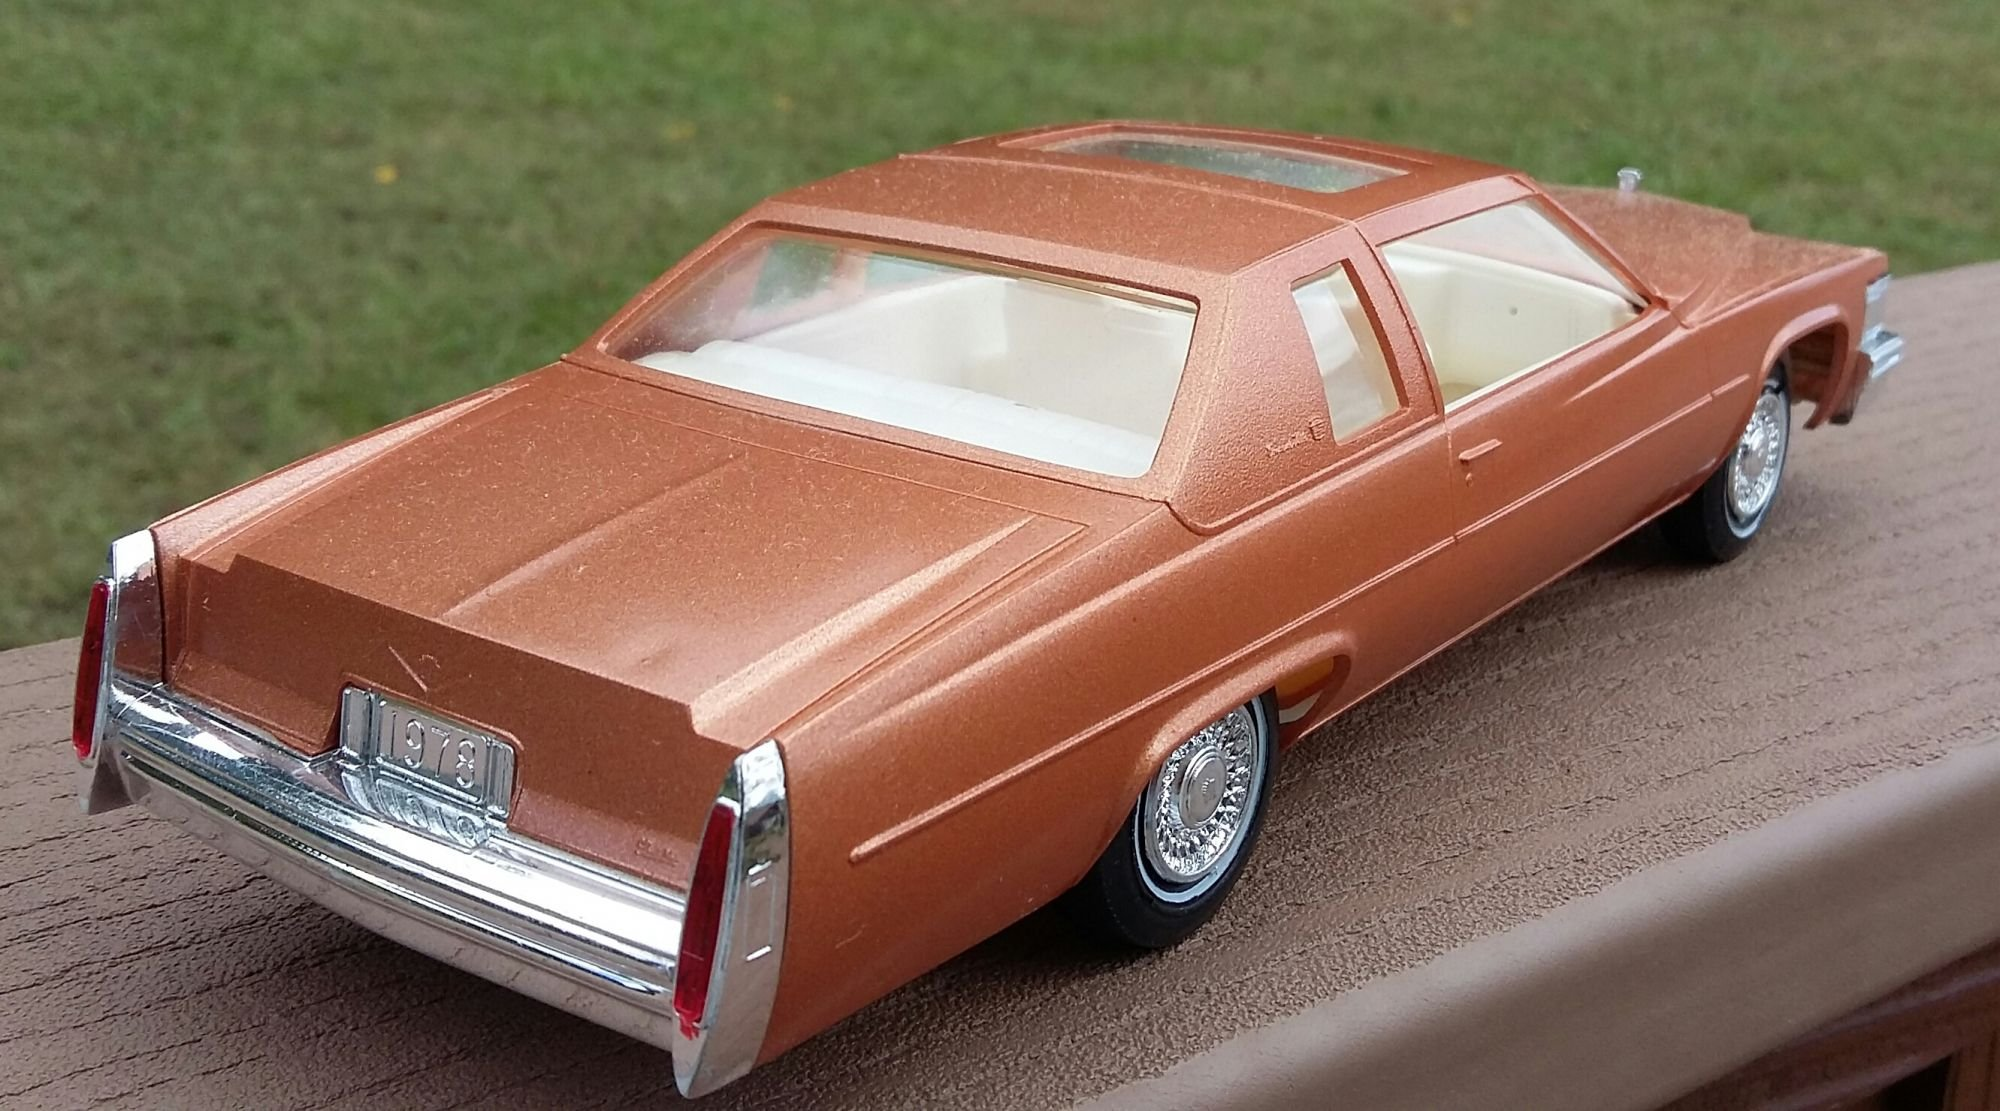 Obsolete Auto Dealer Showroom Collectibles Promos Toys 1978 Cadillac Sedan Deville 4 Door Stock10691978 Coupe With Free Us Shipping